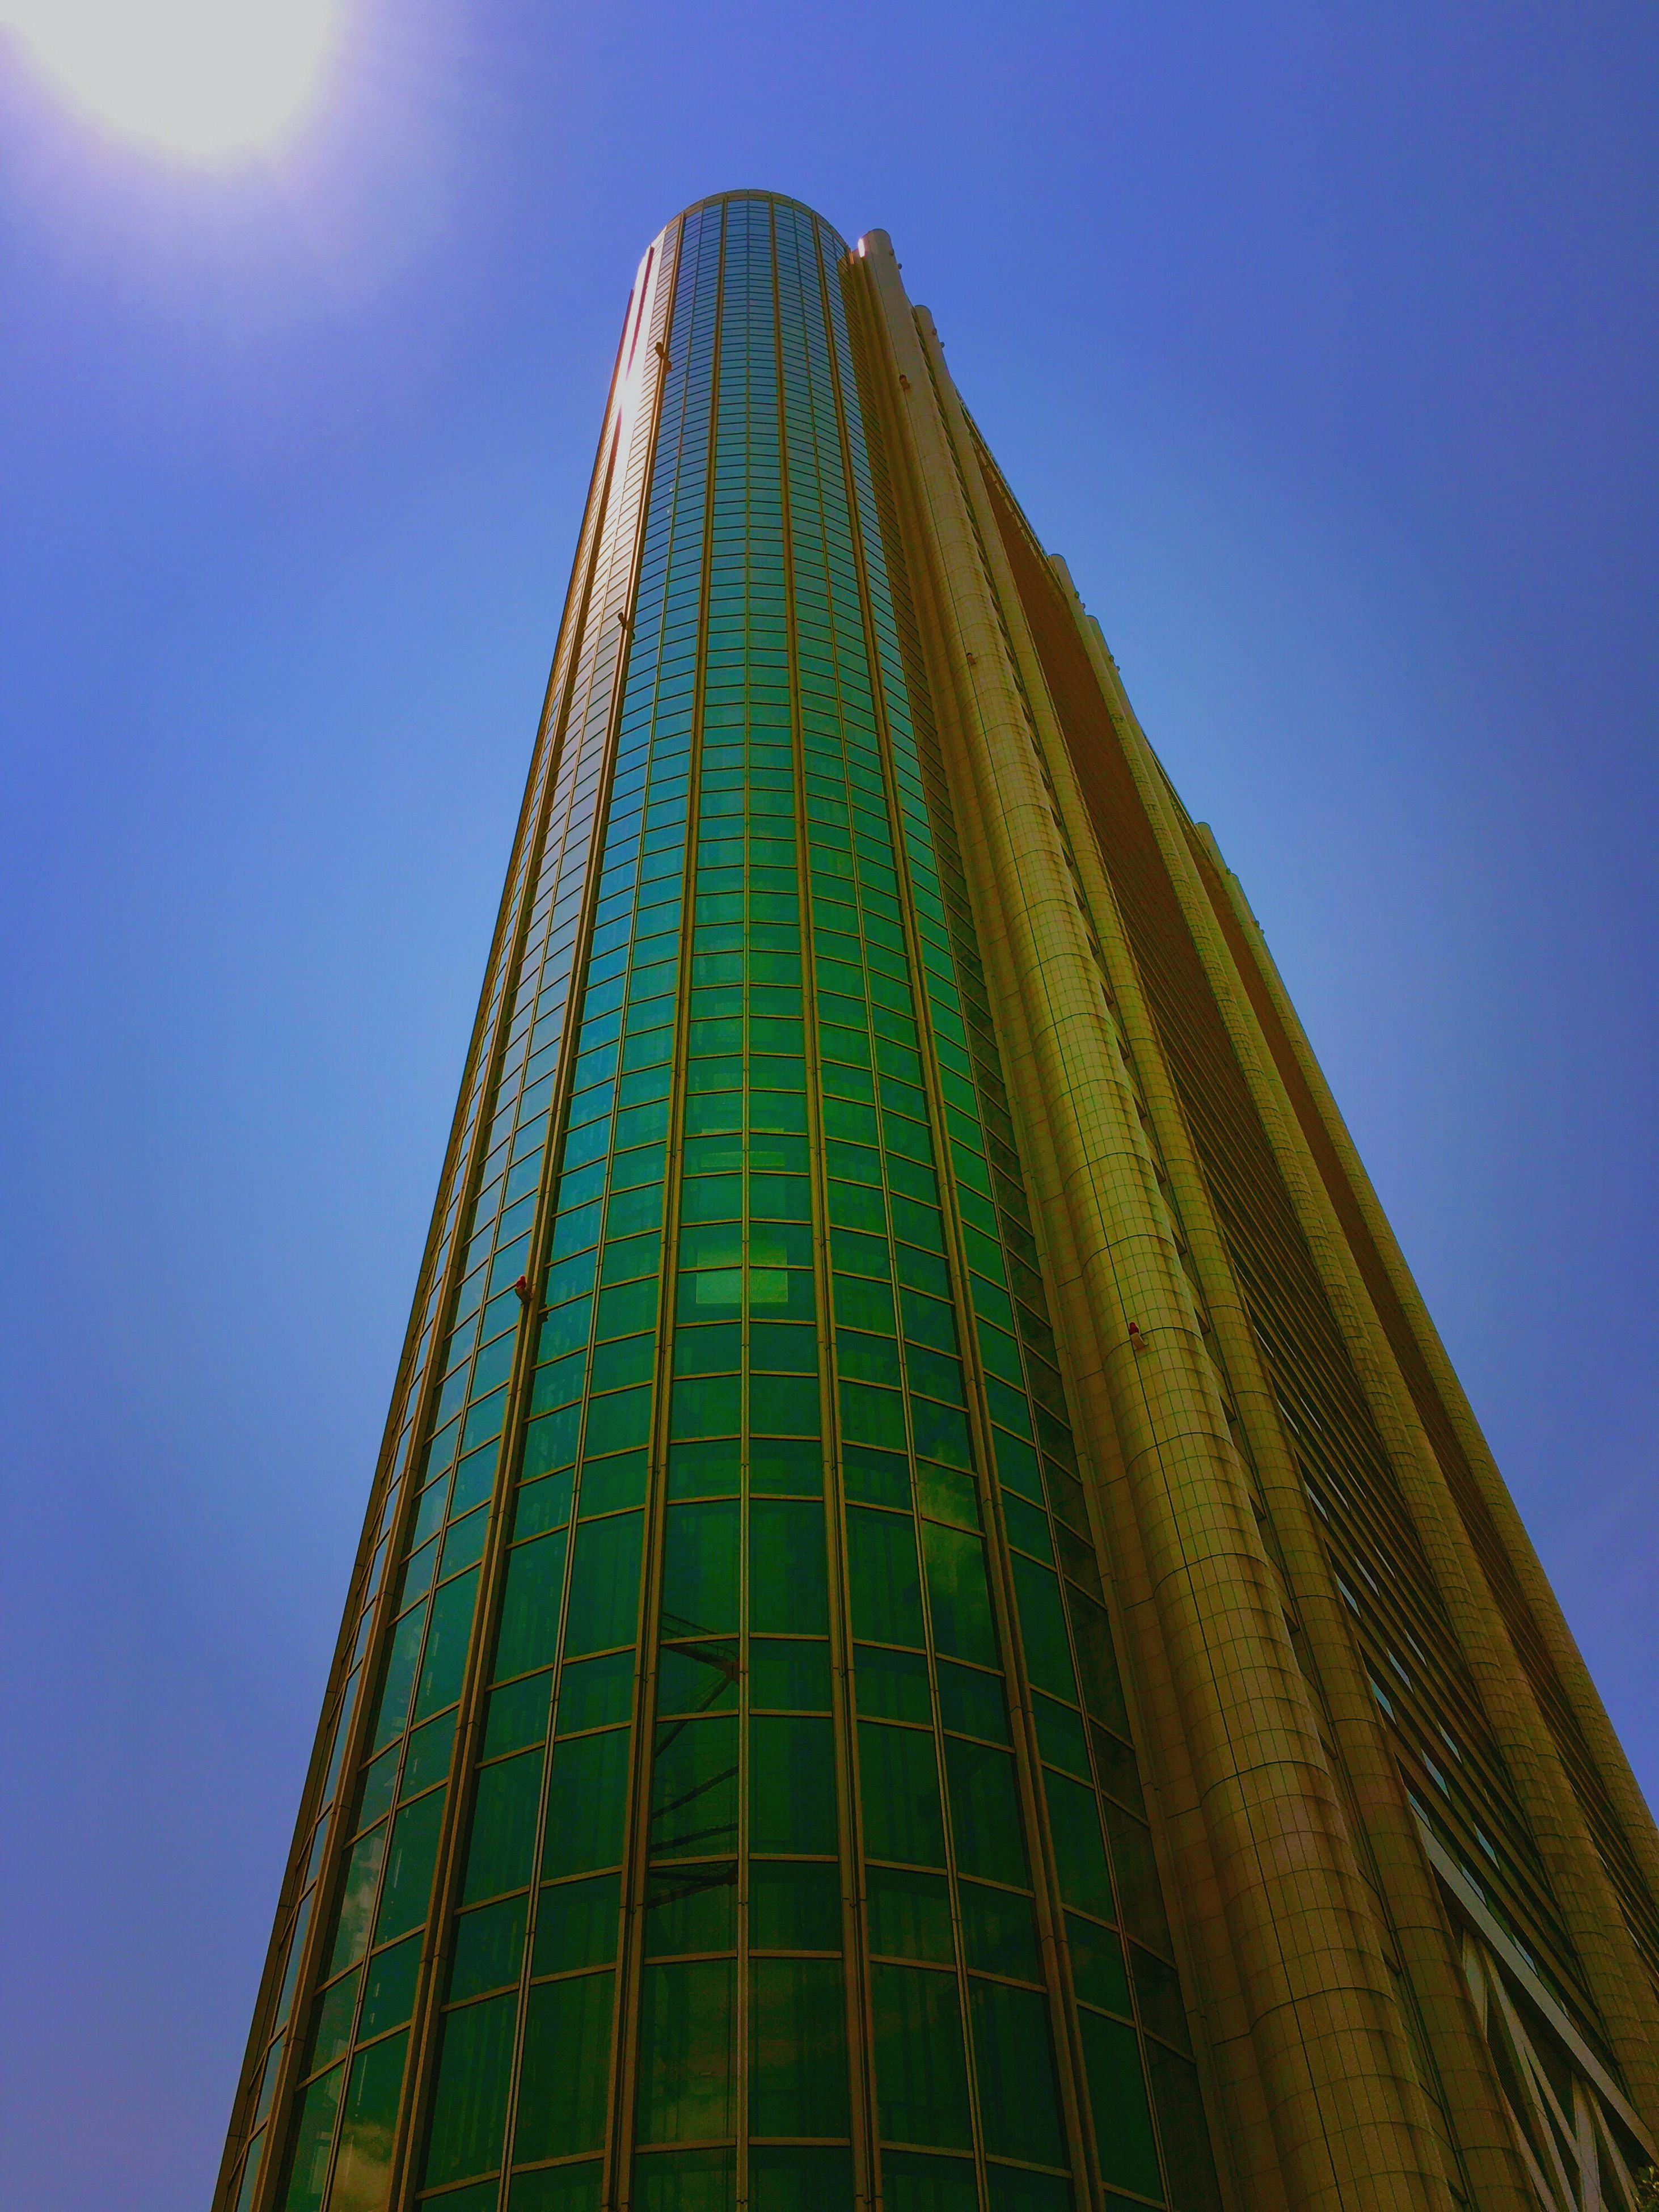 low angle view, built structure, architecture, blue, clear sky, tall - high, sunlight, tower, famous place, building exterior, sky, metal, travel destinations, outdoors, international landmark, day, no people, travel, copy space, tourism